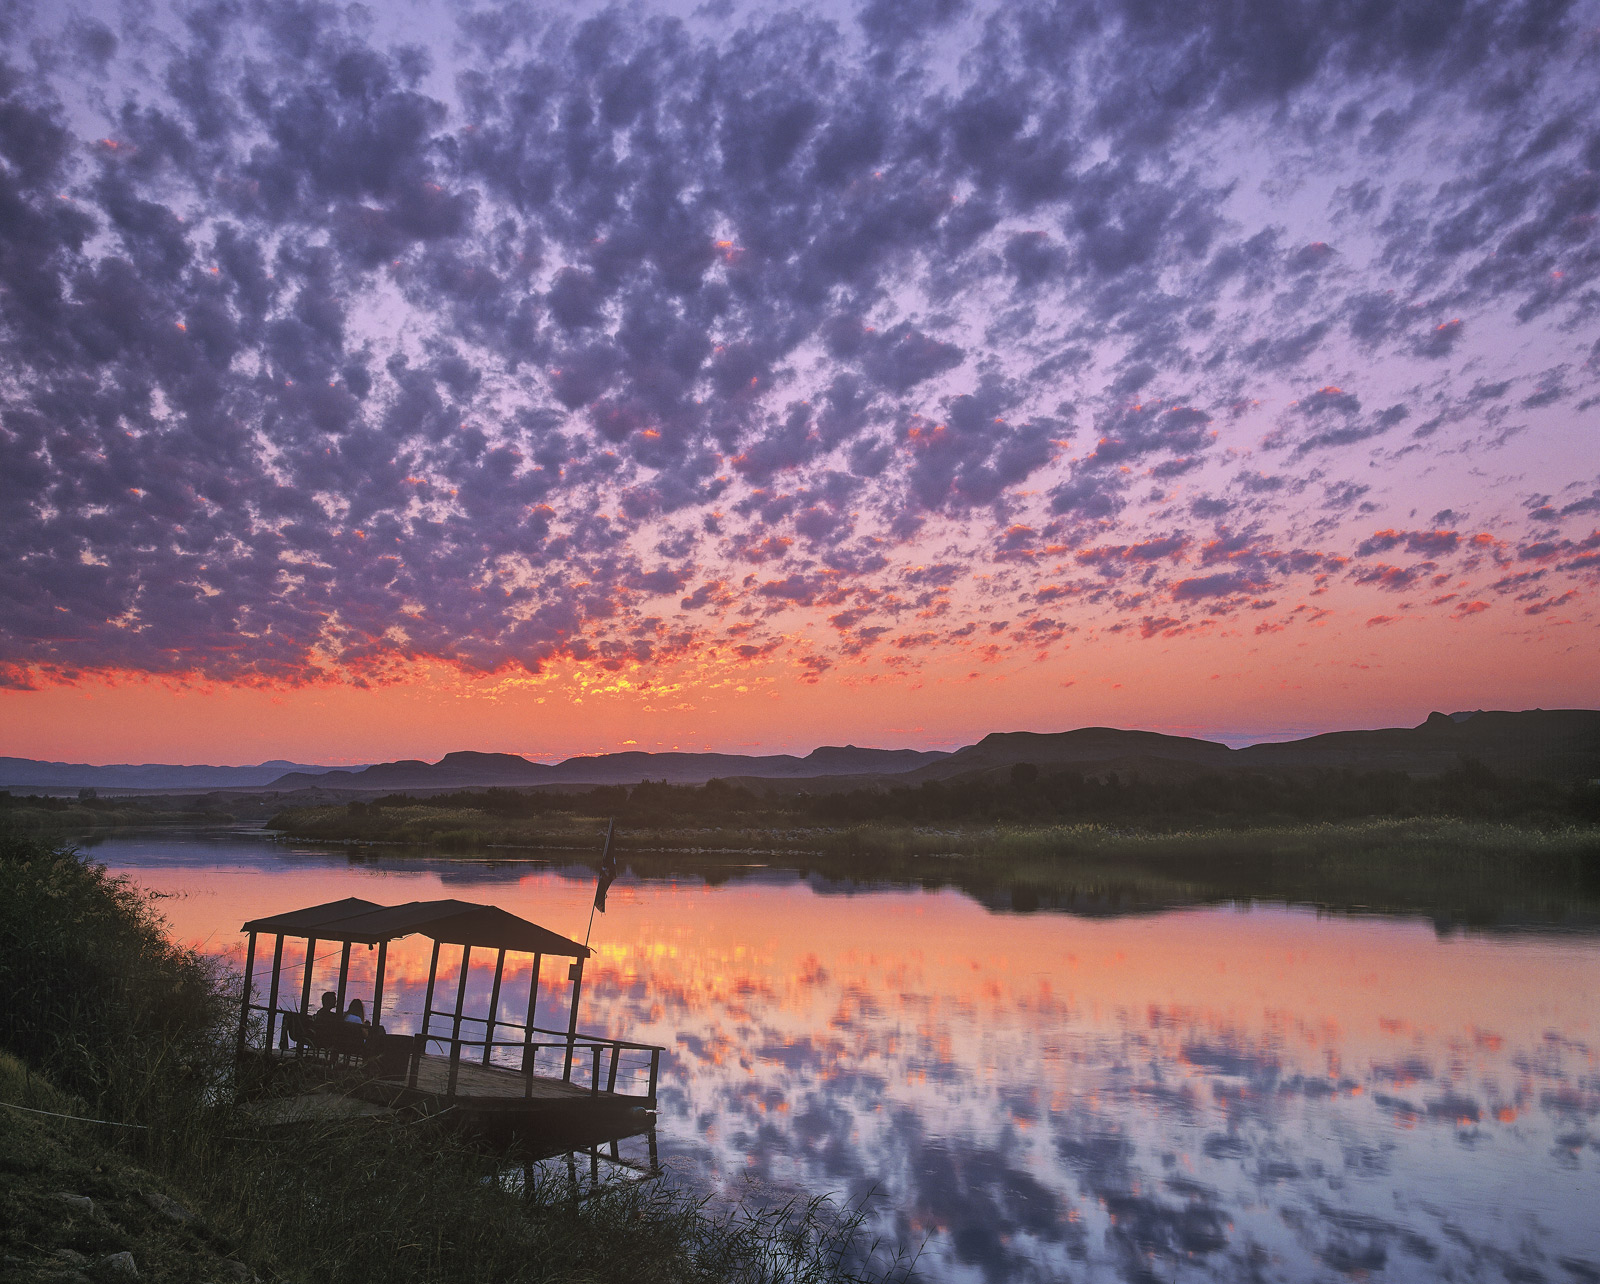 Sunset Gazing, Orange River, South Africa, Africa, border, Namibia, river, passport, sunset, cloud, flecked, sky, advent, photo